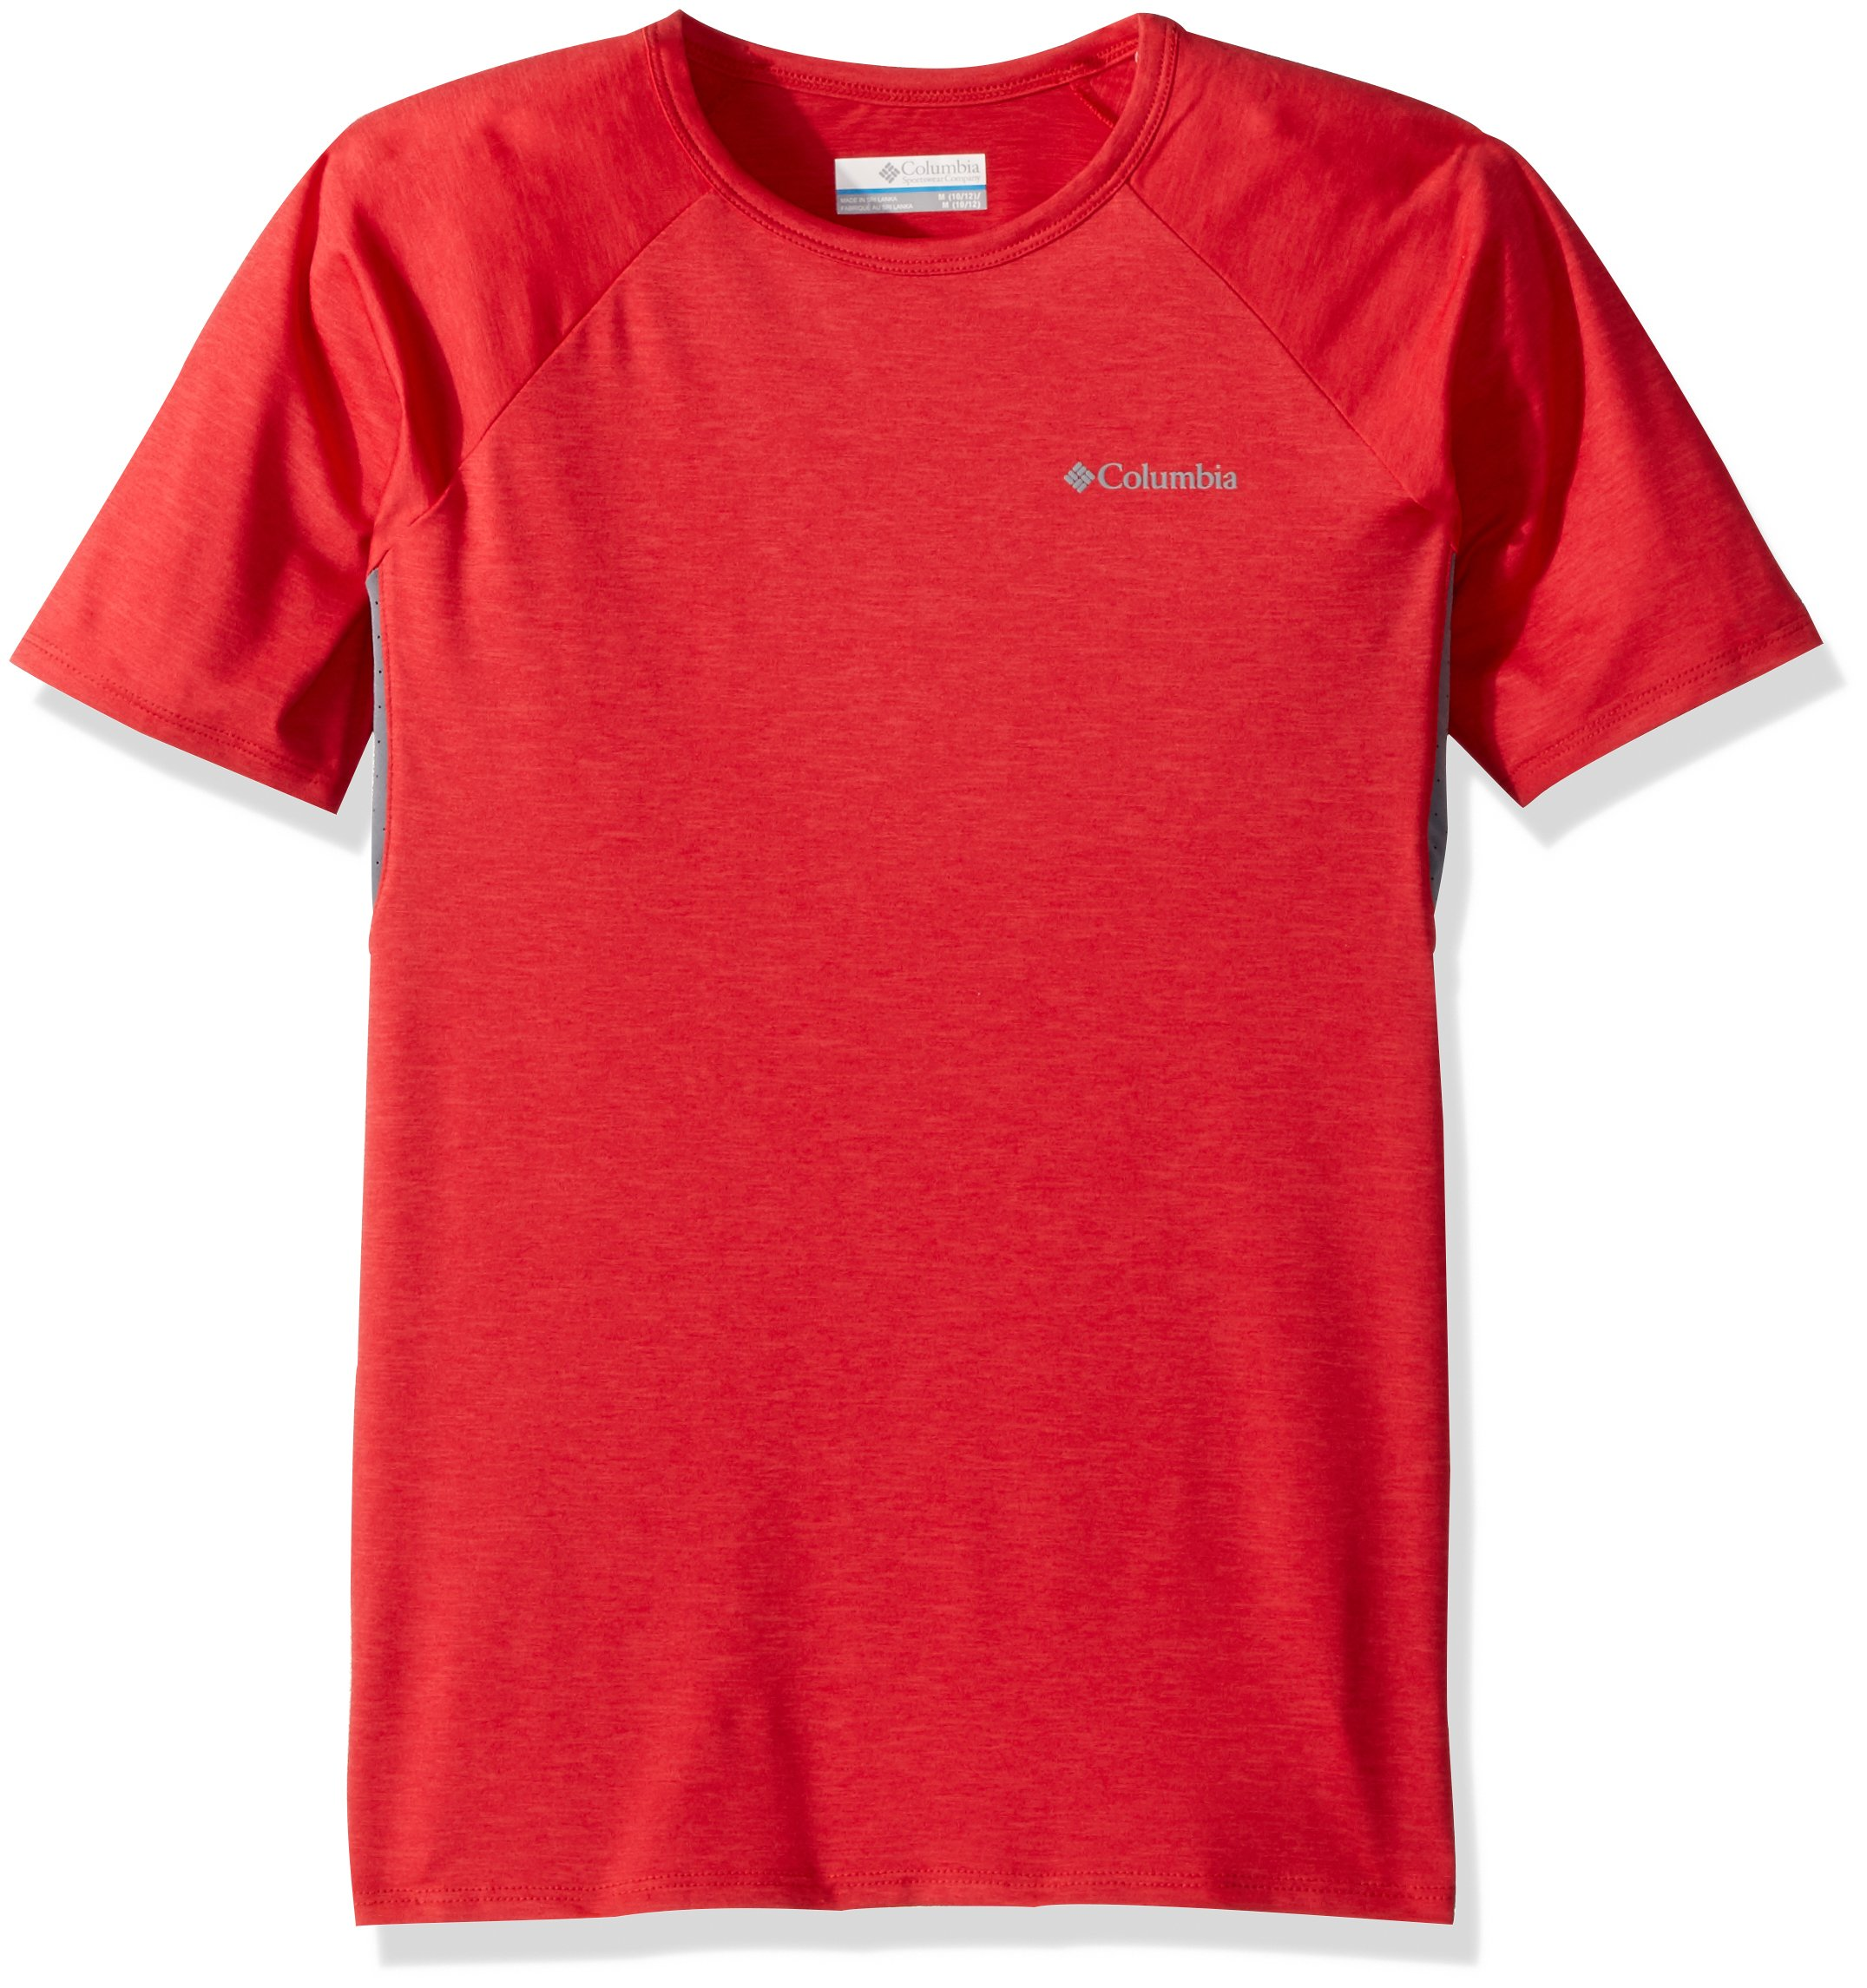 Columbia Boys Silver RidgeIi Short Sleeve Tee, Bright Red Heather, Large by Columbia